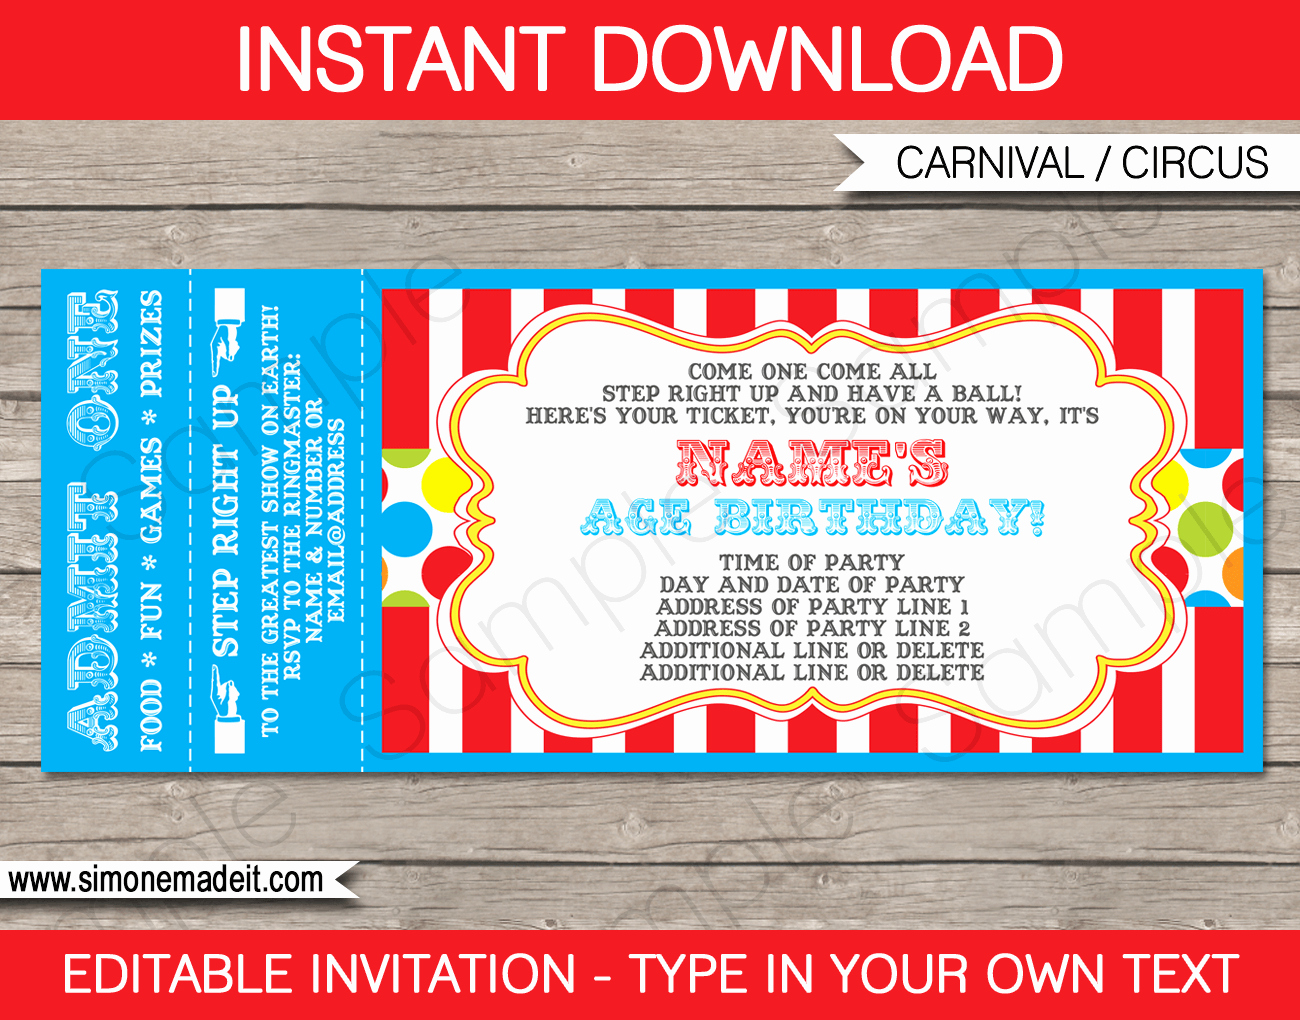 Carnival Ticket Template Awesome Carnival Party Ticket Invitation Template